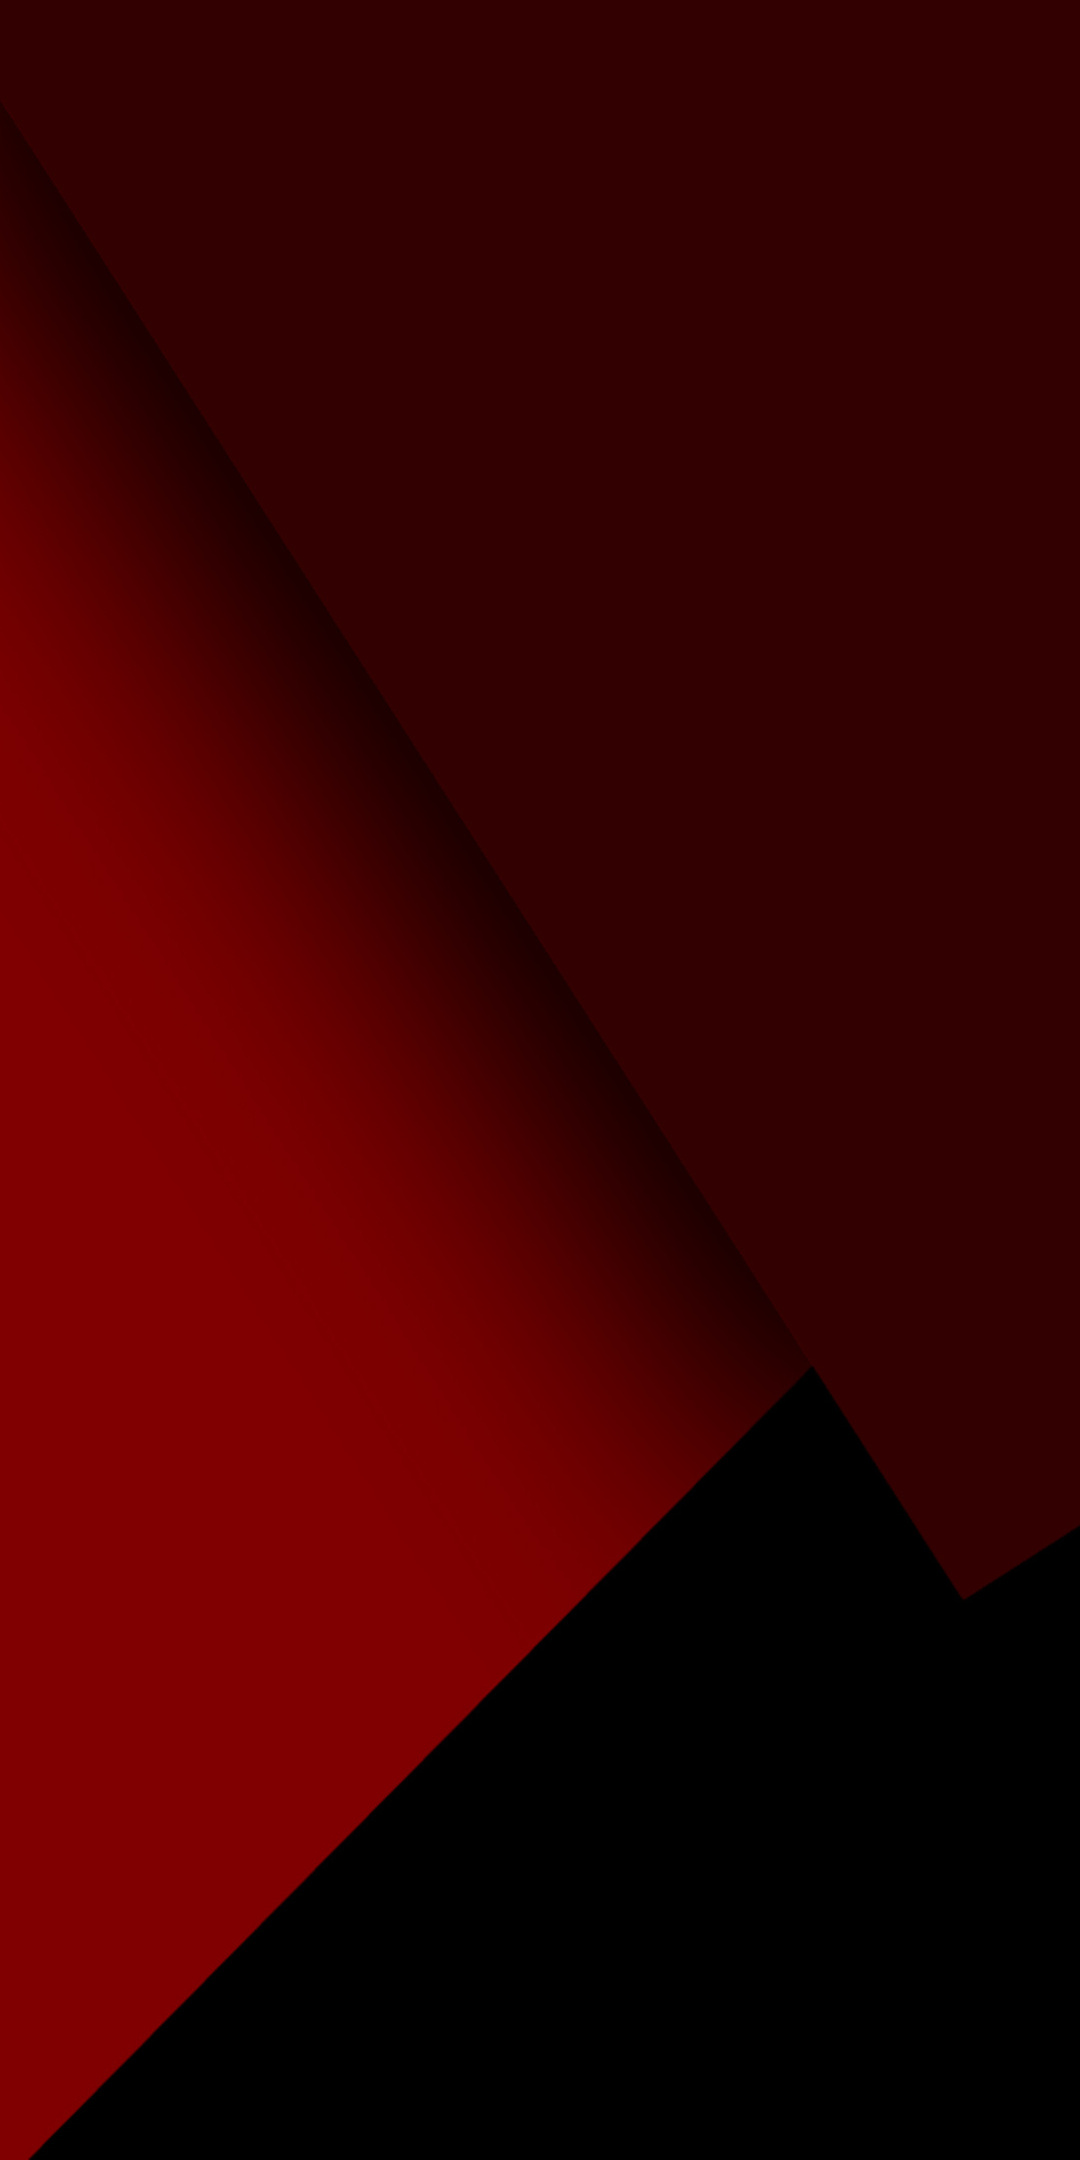 1080x2160 Dark Red Black Abstract 4k One Plus 5t Honor 7x Honor